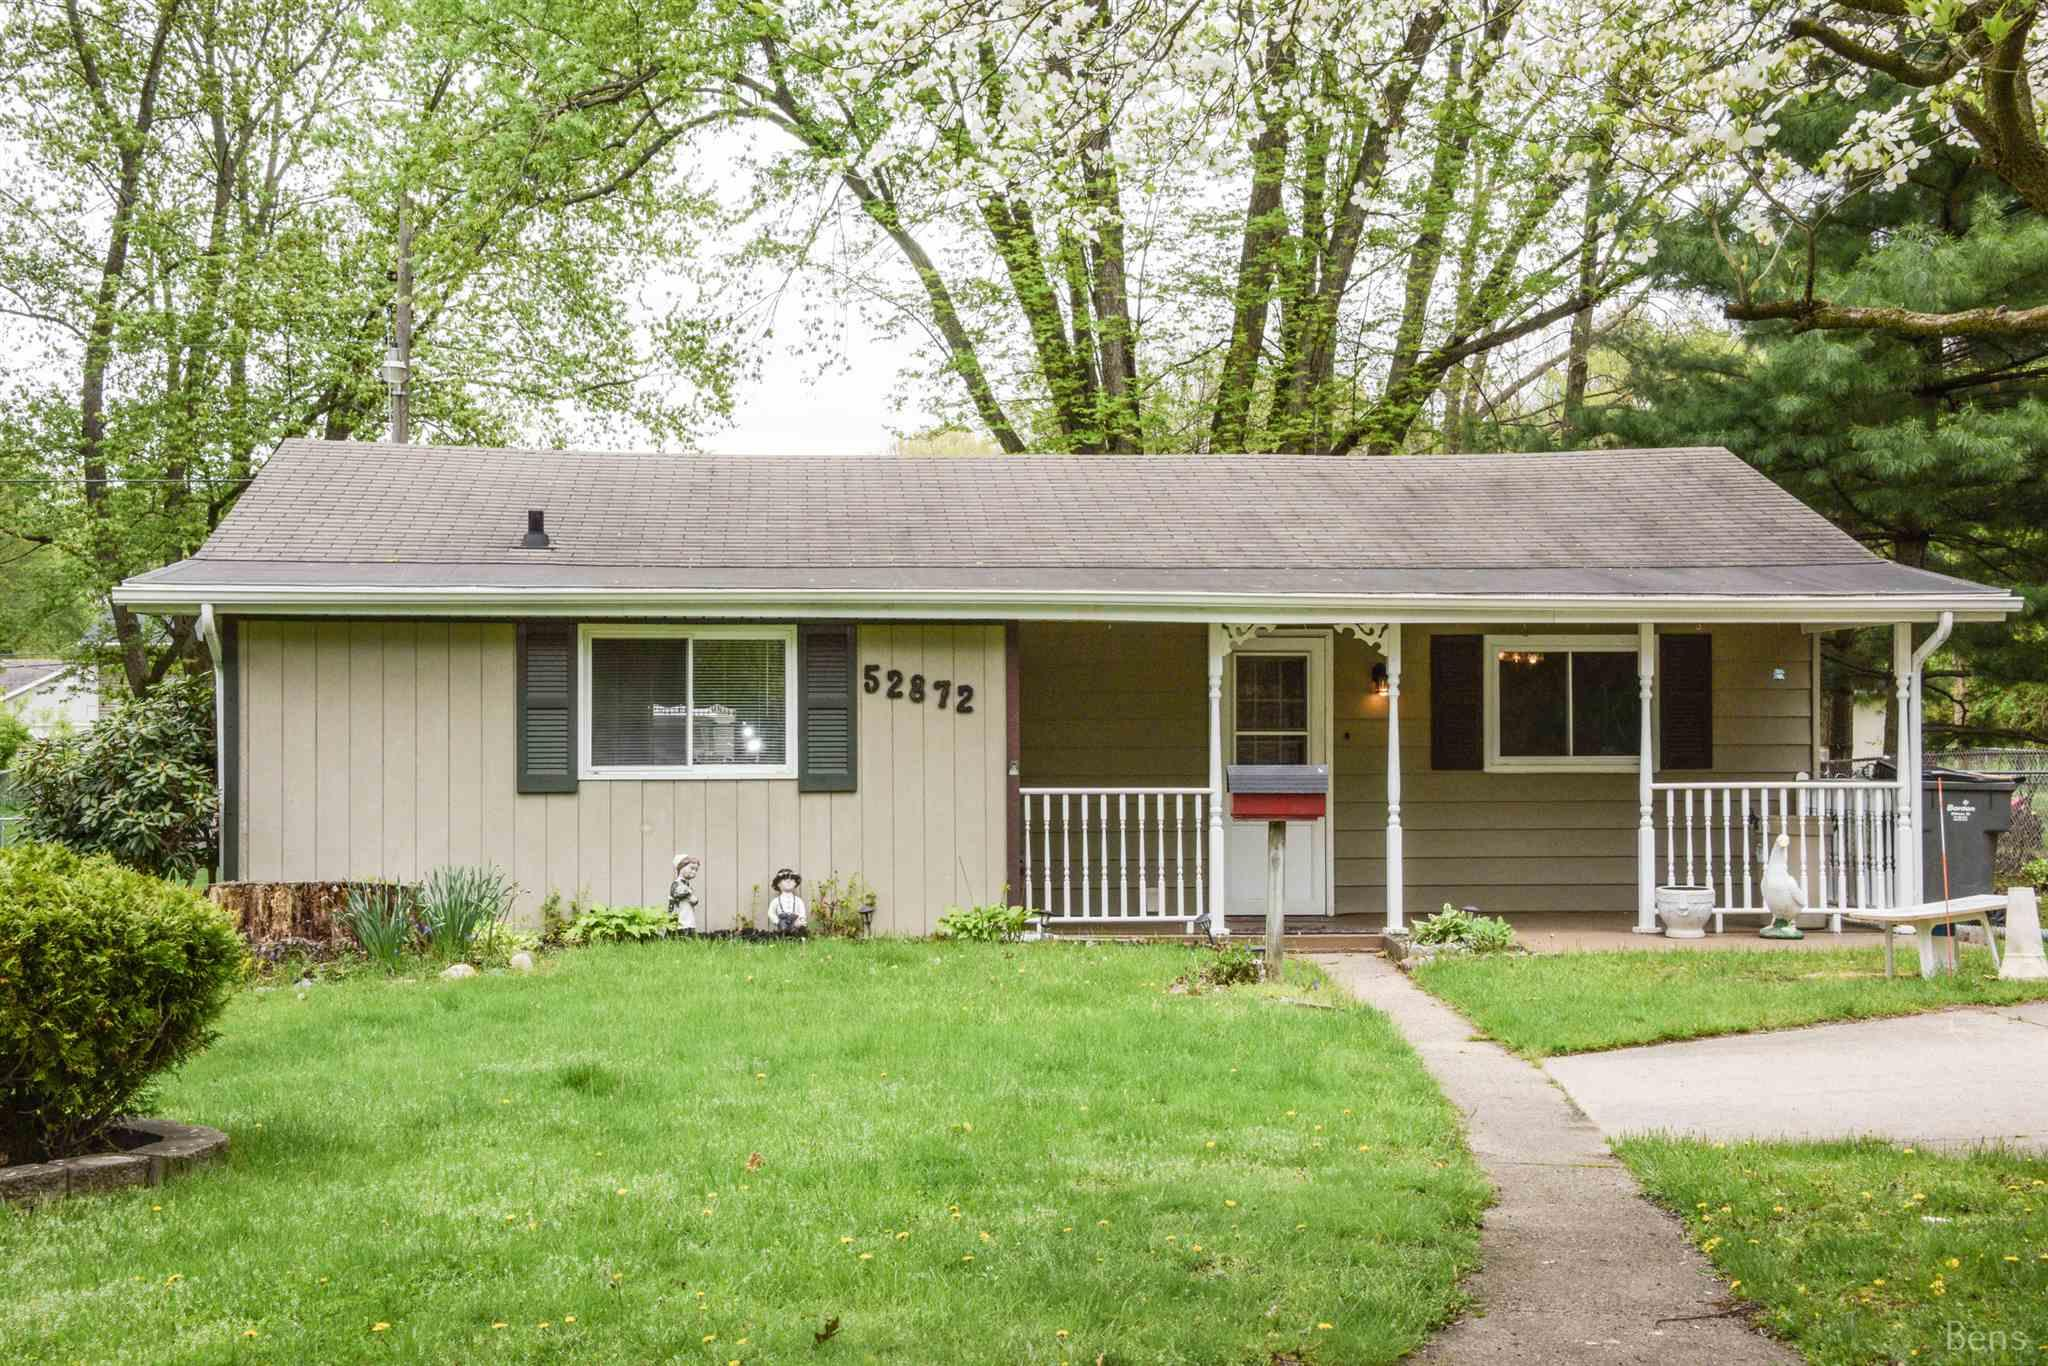 52872 Francis South Bend, IN 46637